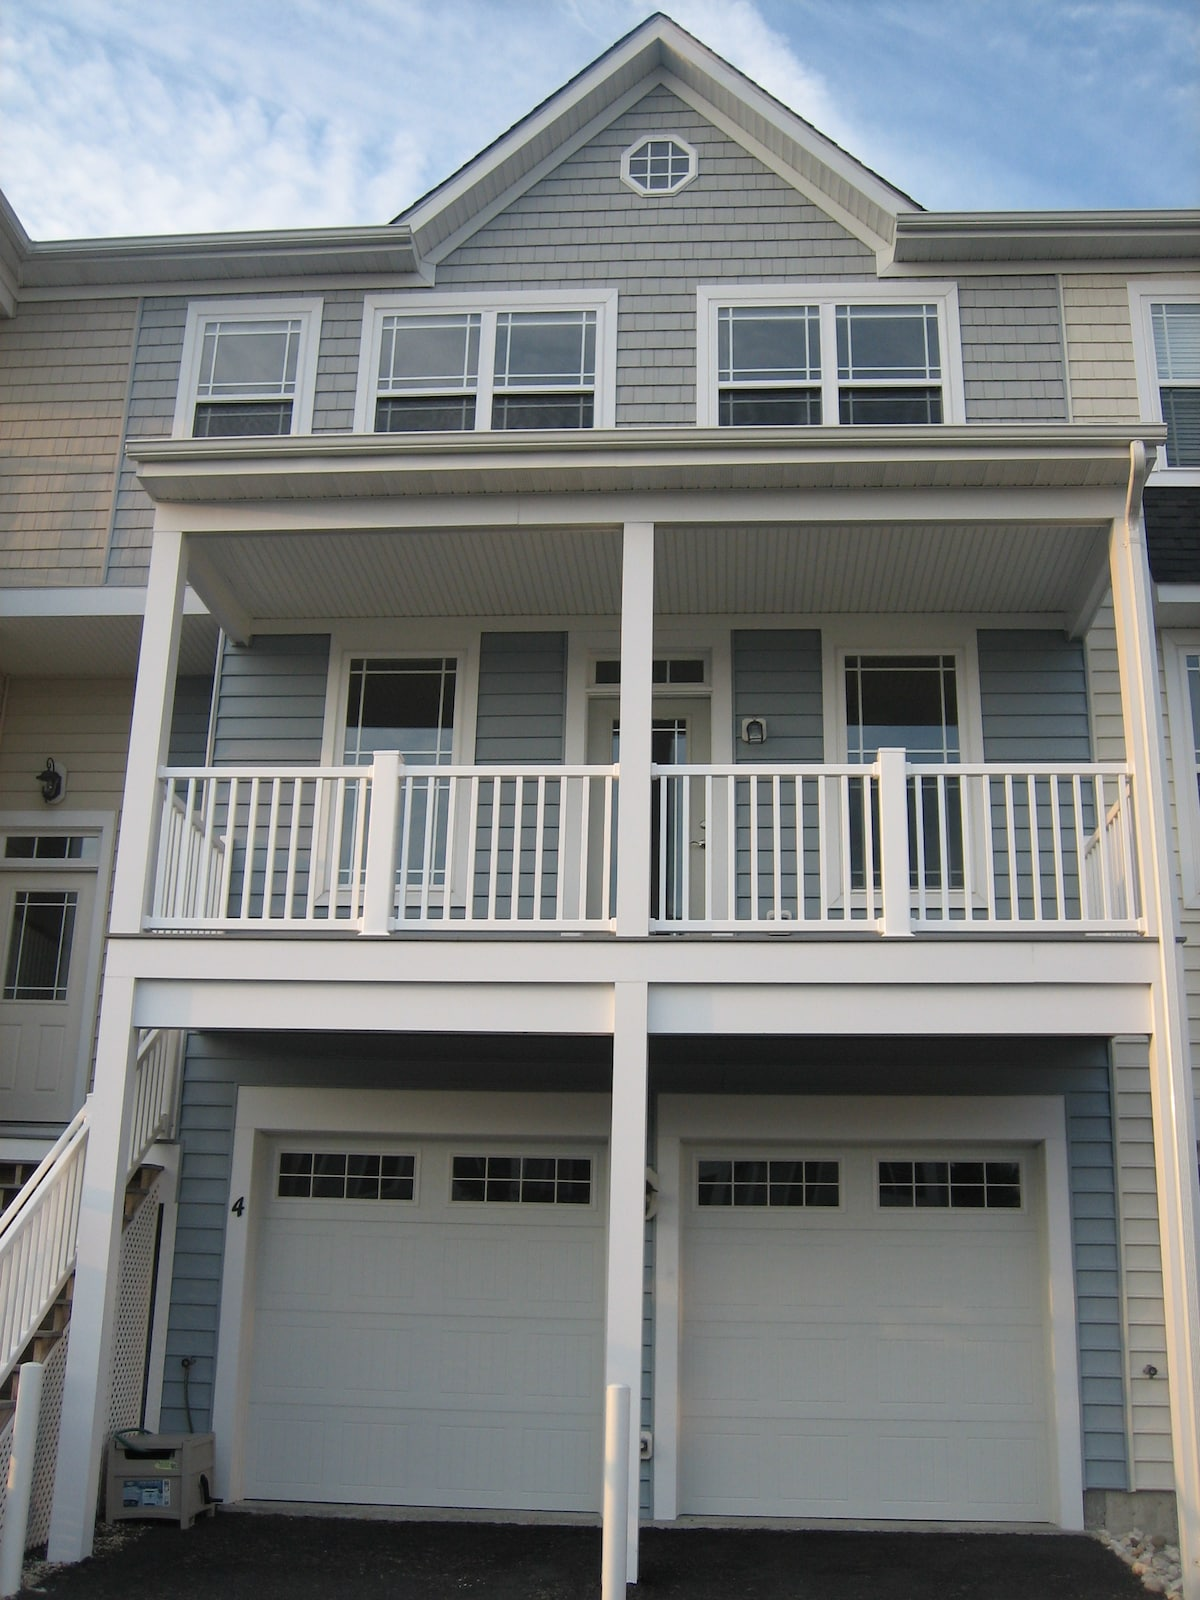 New rental in Seaside Village - minutes to everything!